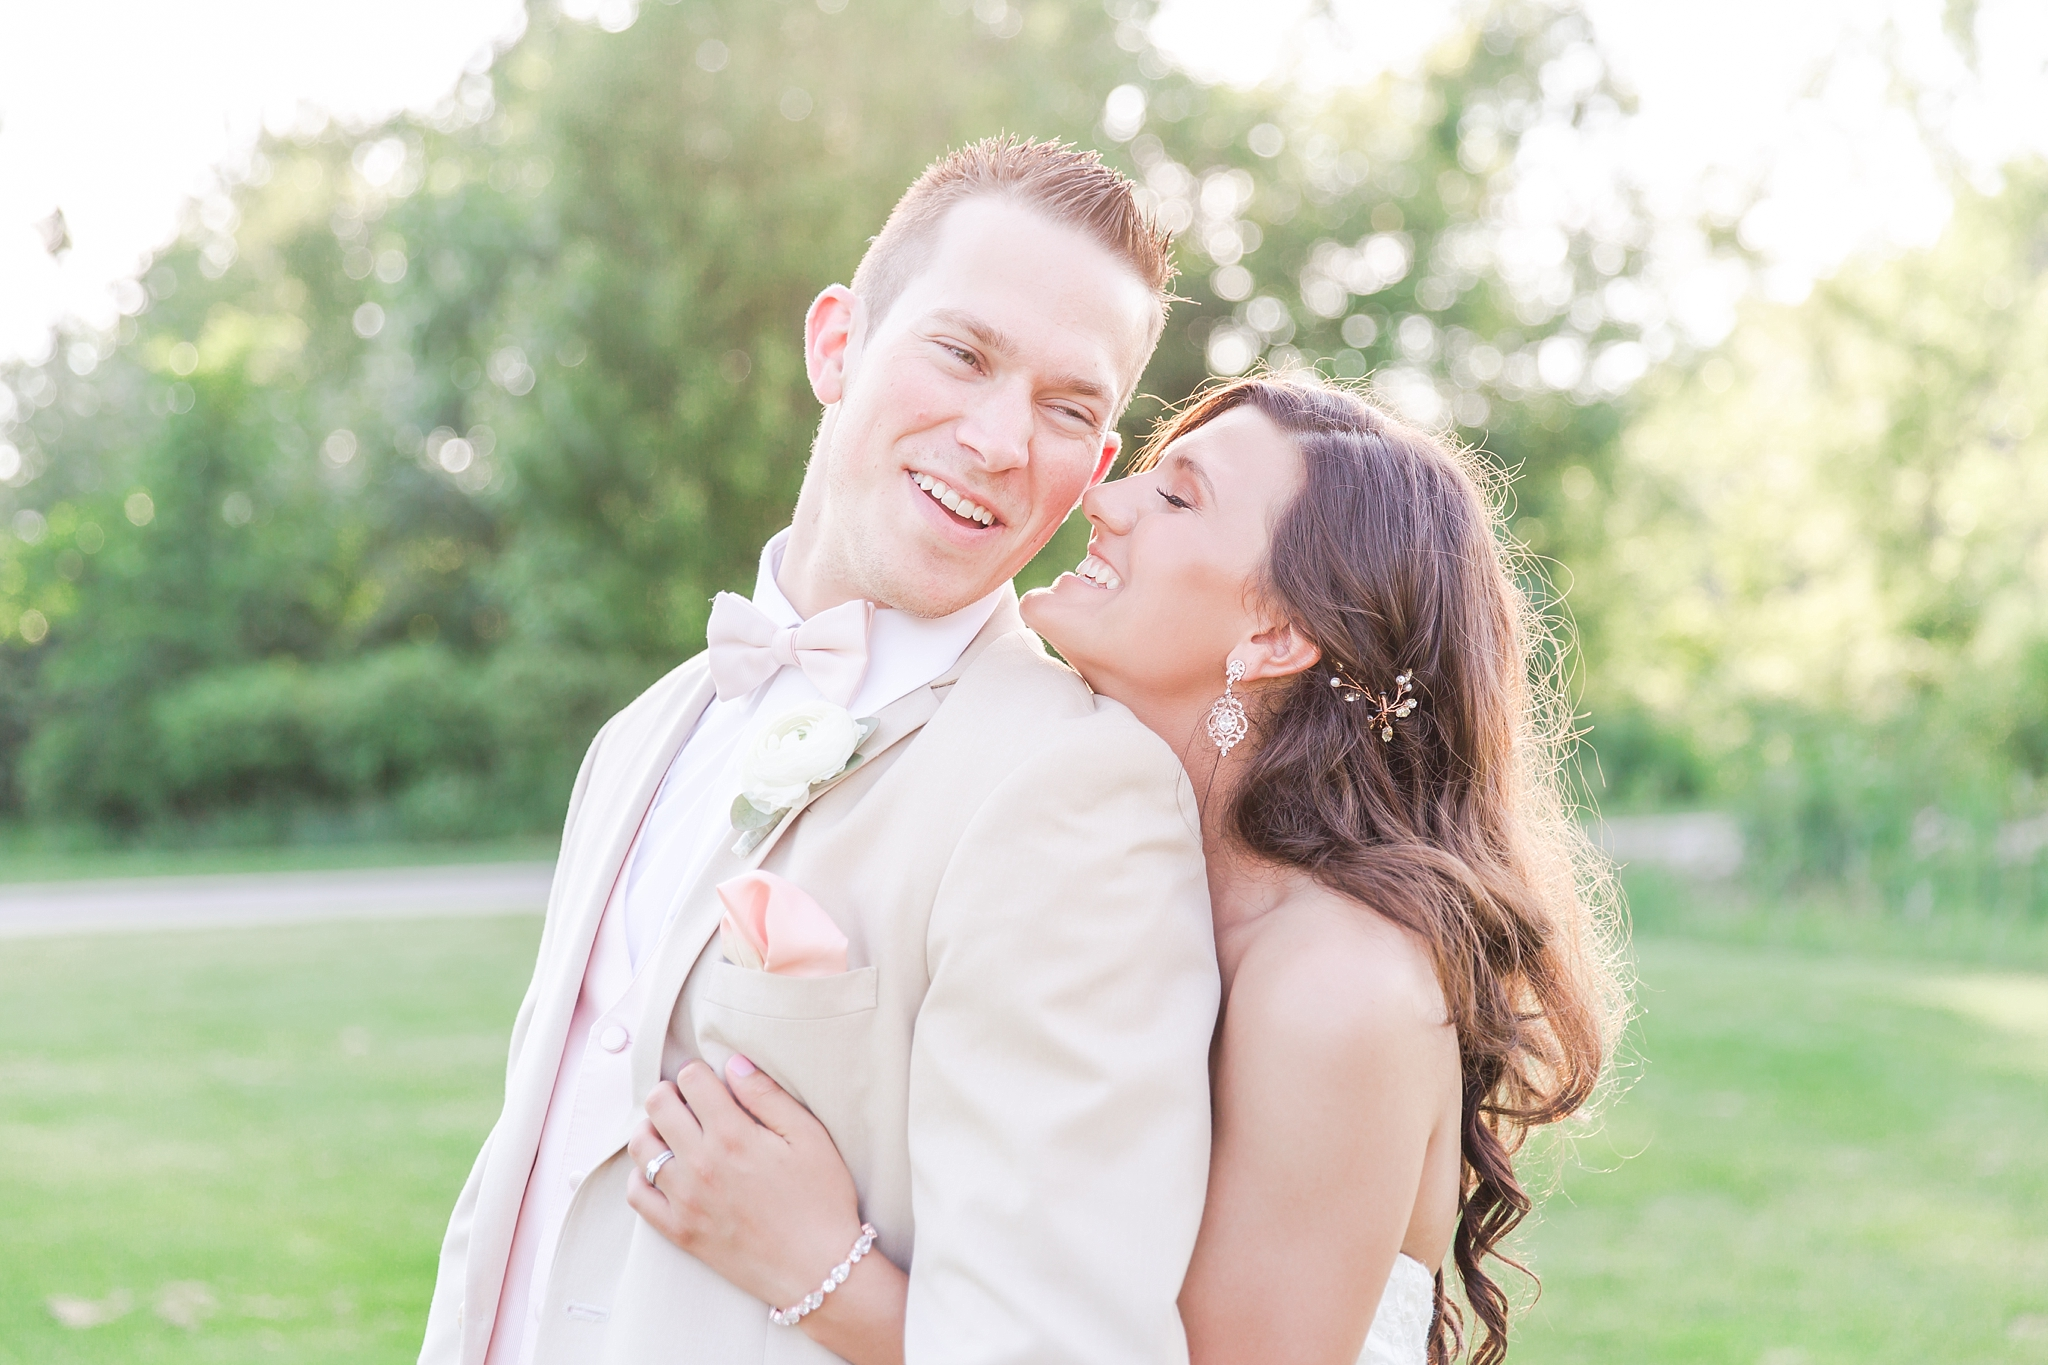 candid-timeless-wedding-photos-at-the-captains-club-in-grand-blanc-michigan-by-courtney-carolyn-photography_0079.jpg